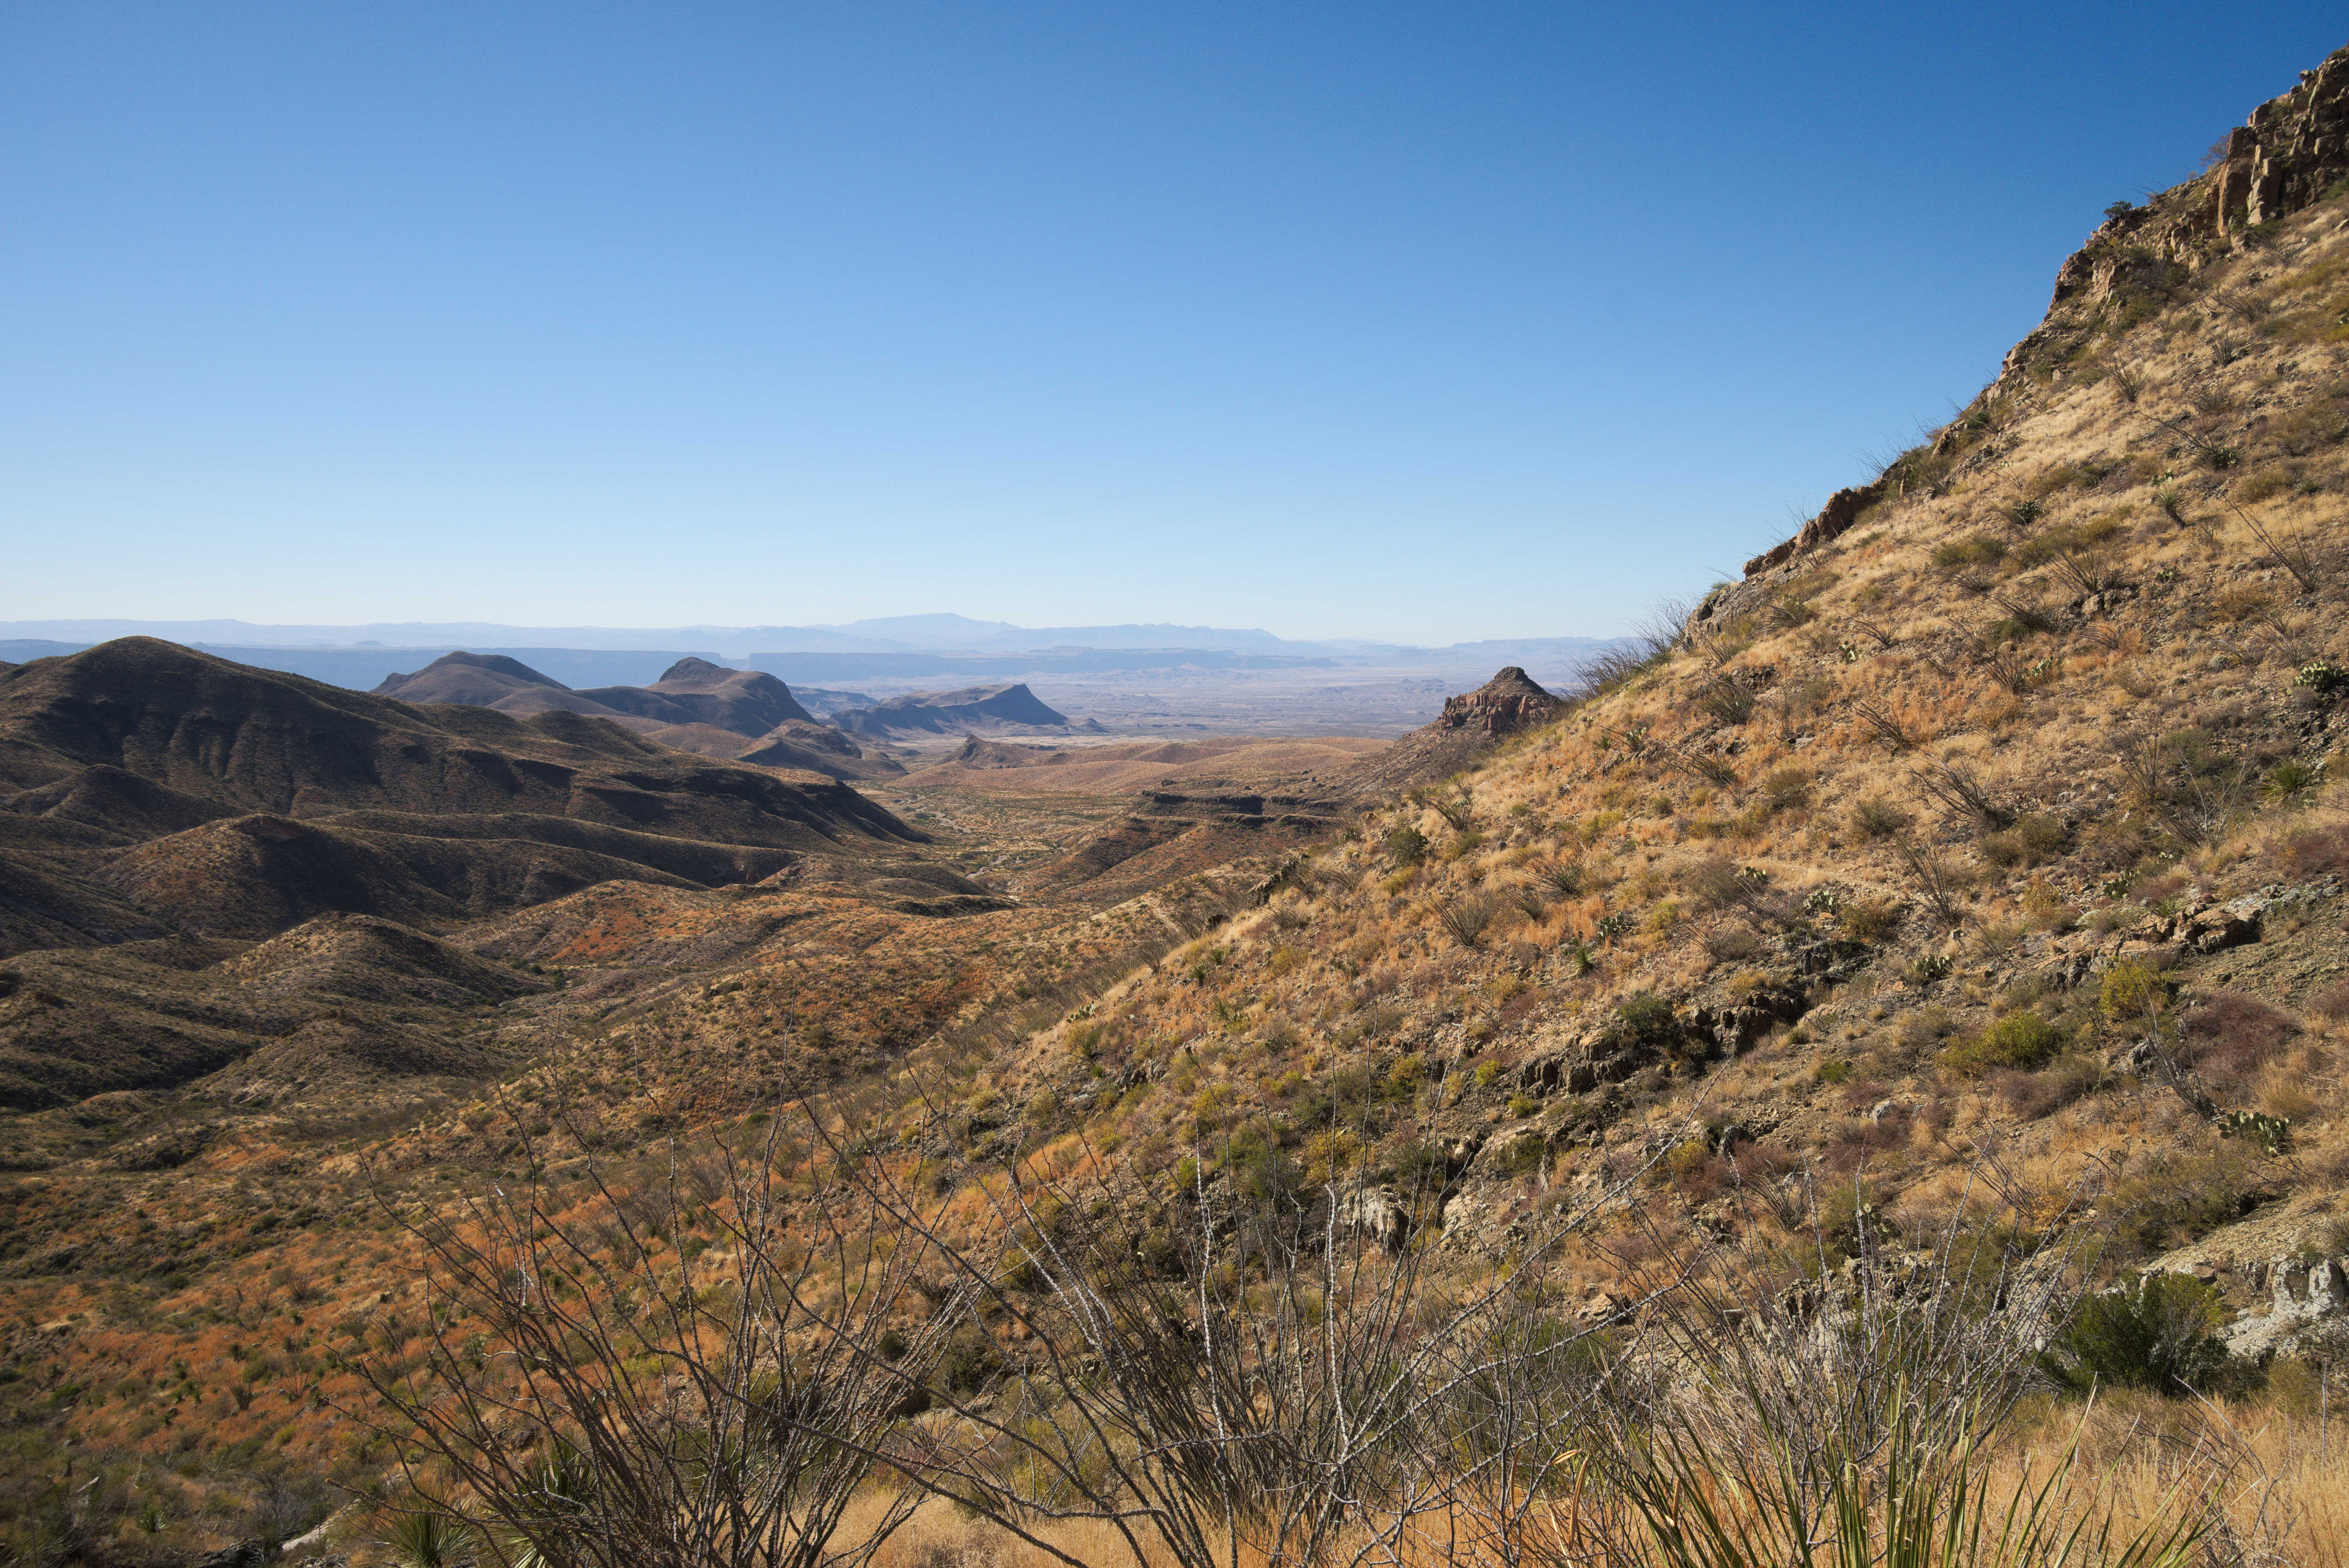 Big Bend National Park - Outer Mountain Loop